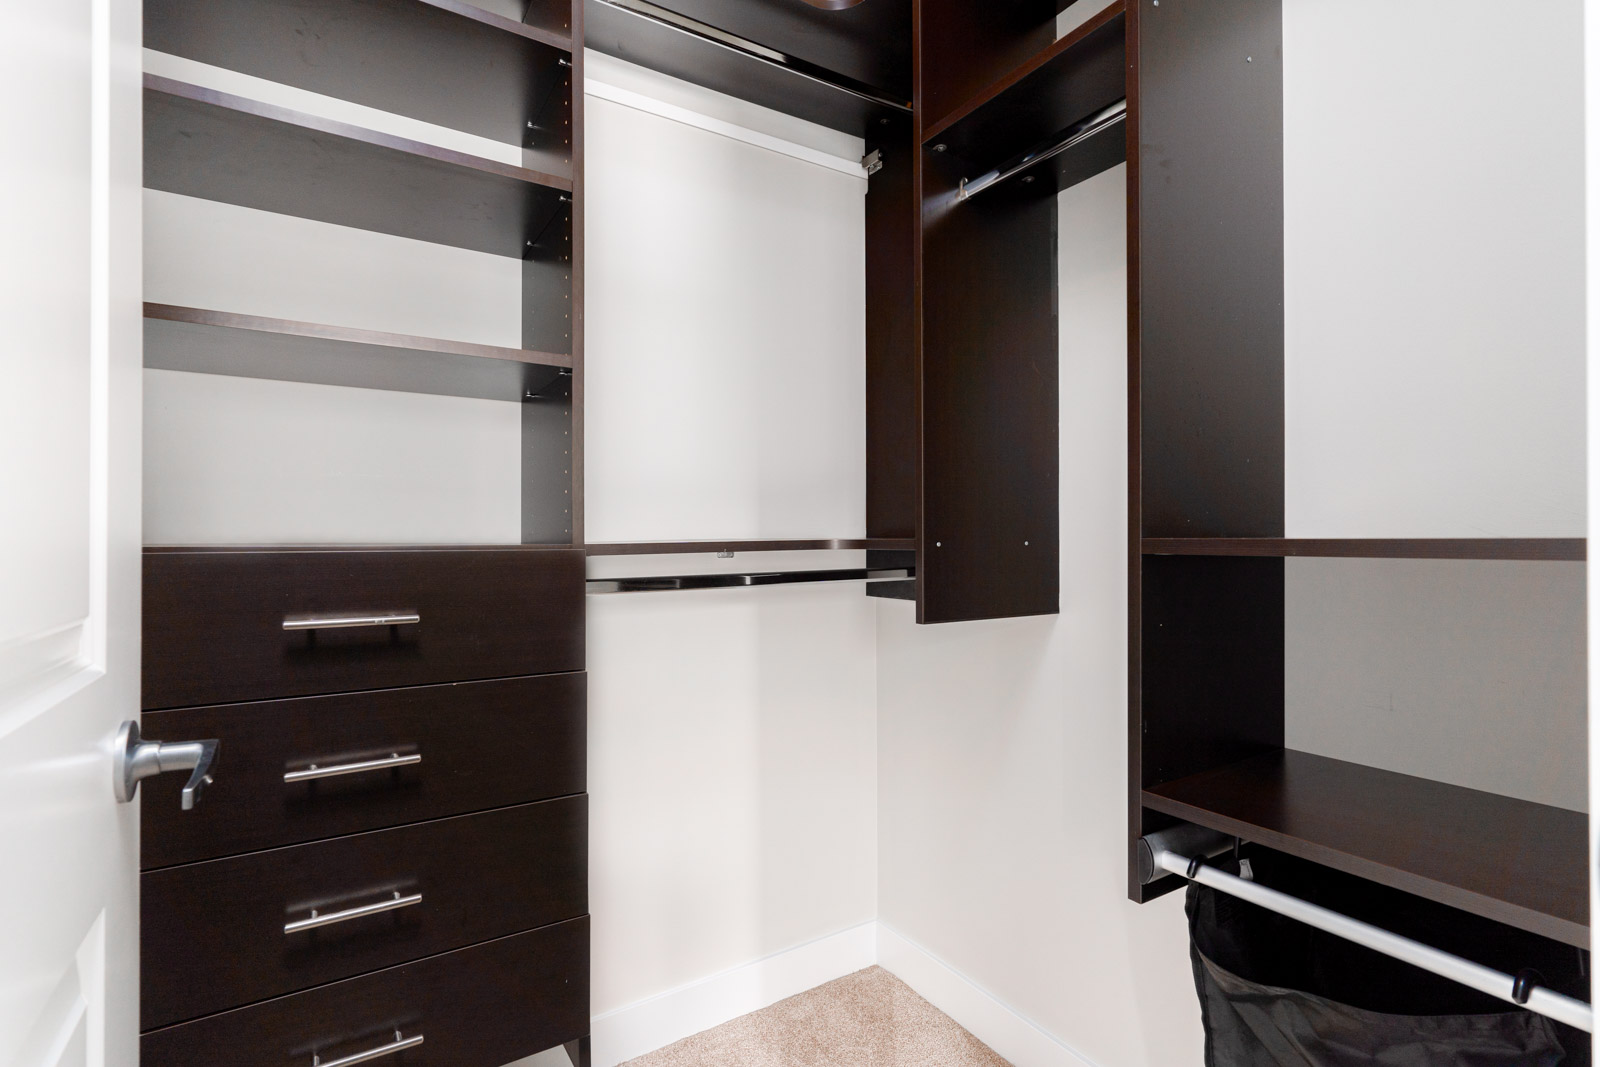 Built in closet with dark wood shelves